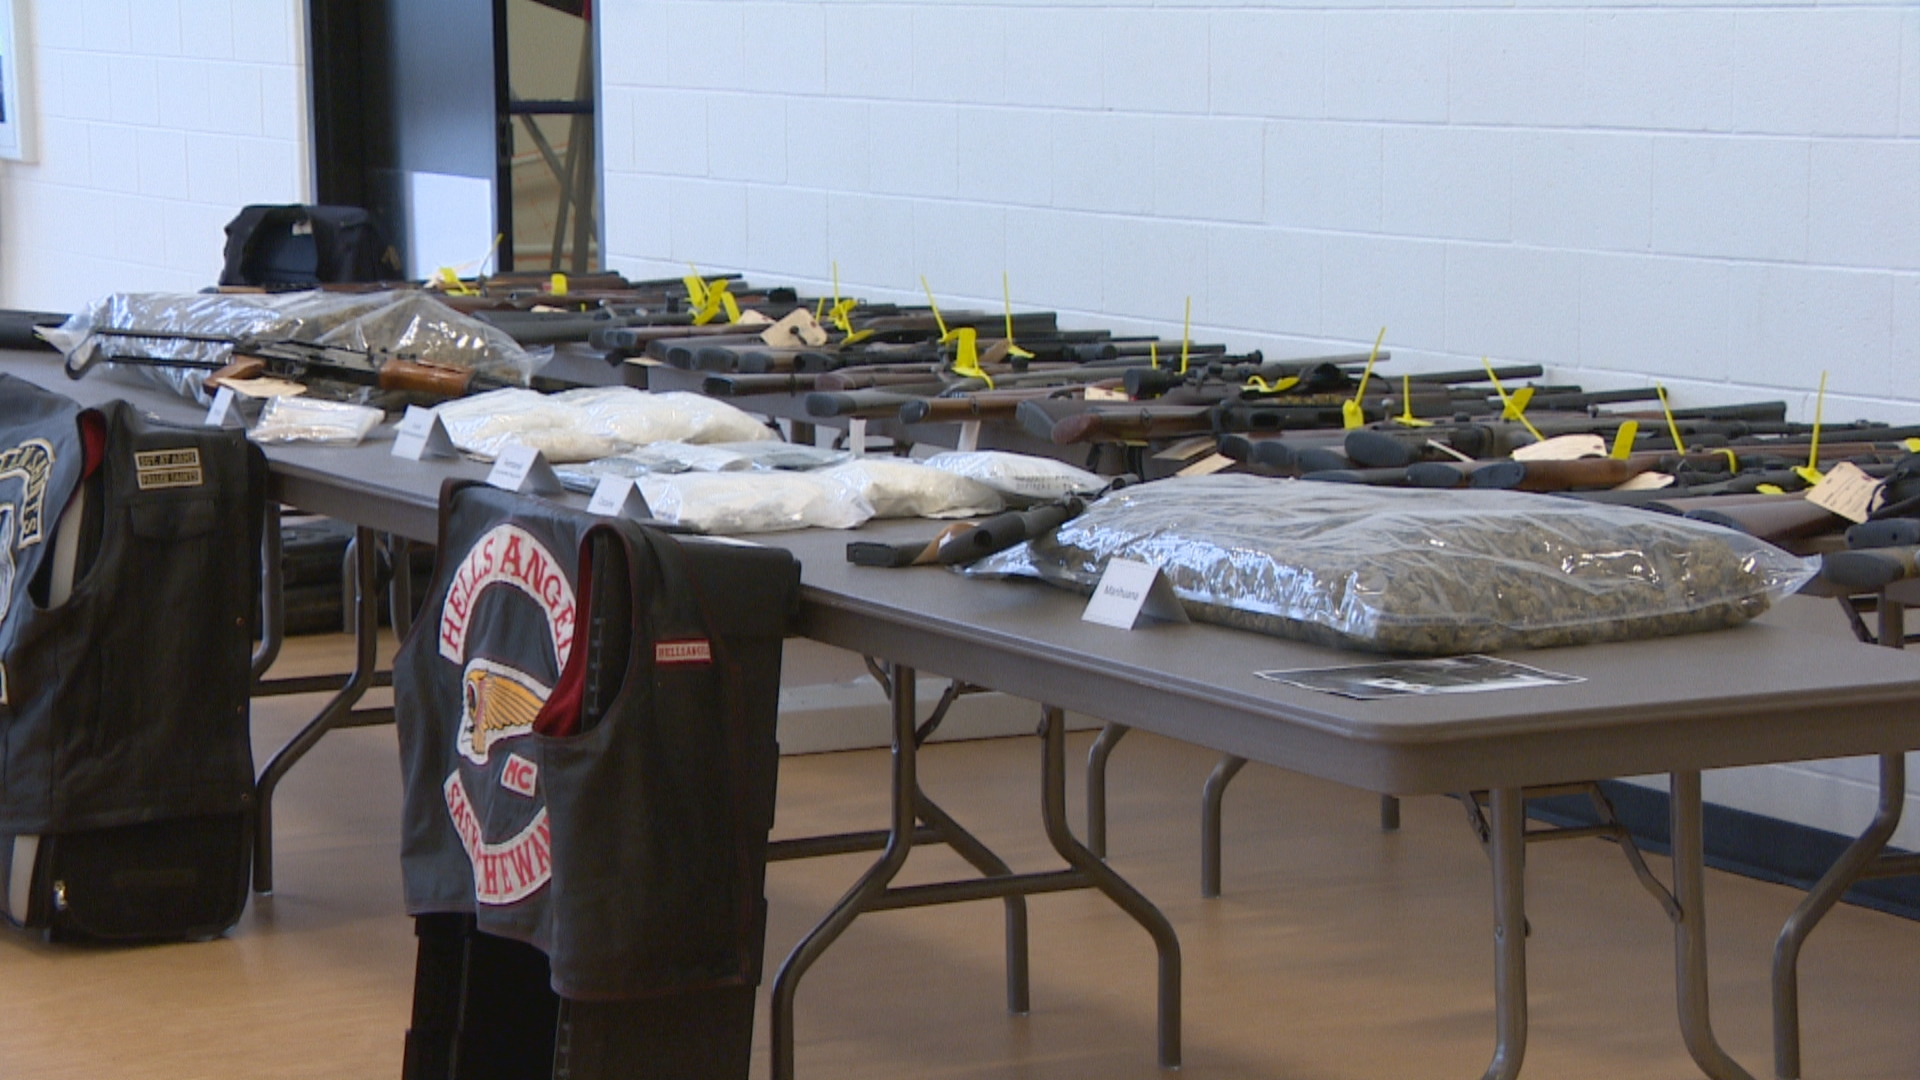 Police across Saskatchewan and Alberta seized guns and drugs, including significant amounts of counterfeit oxycontin and methamphetamine as part of Project Forseti. (CBC)